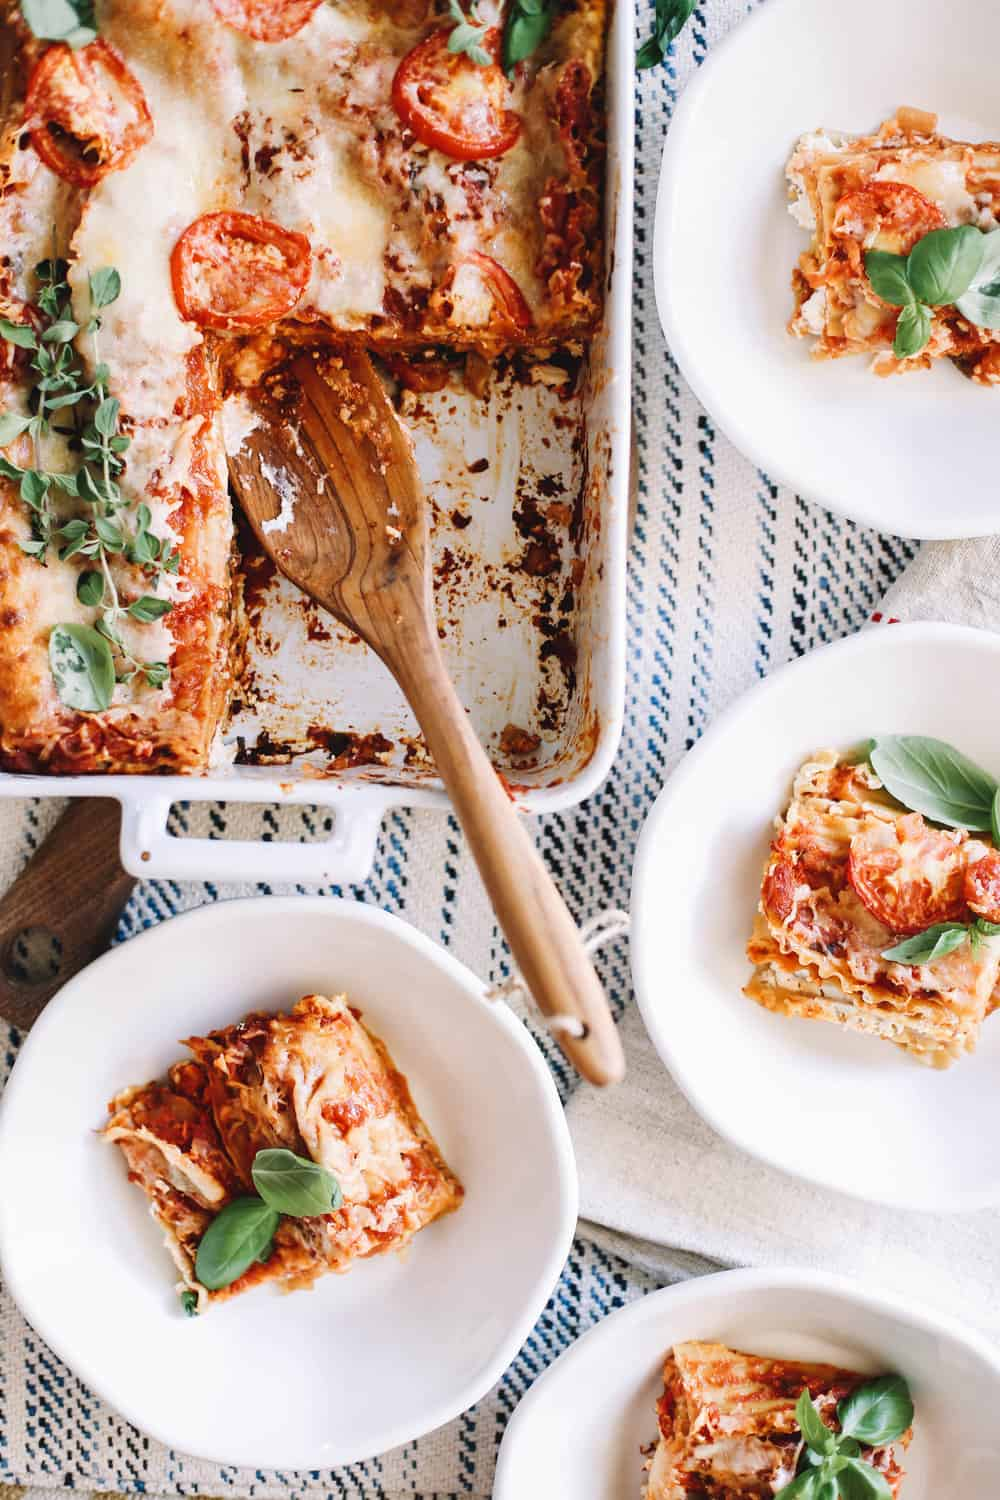 Servings of homemade lasagna in white bowls.